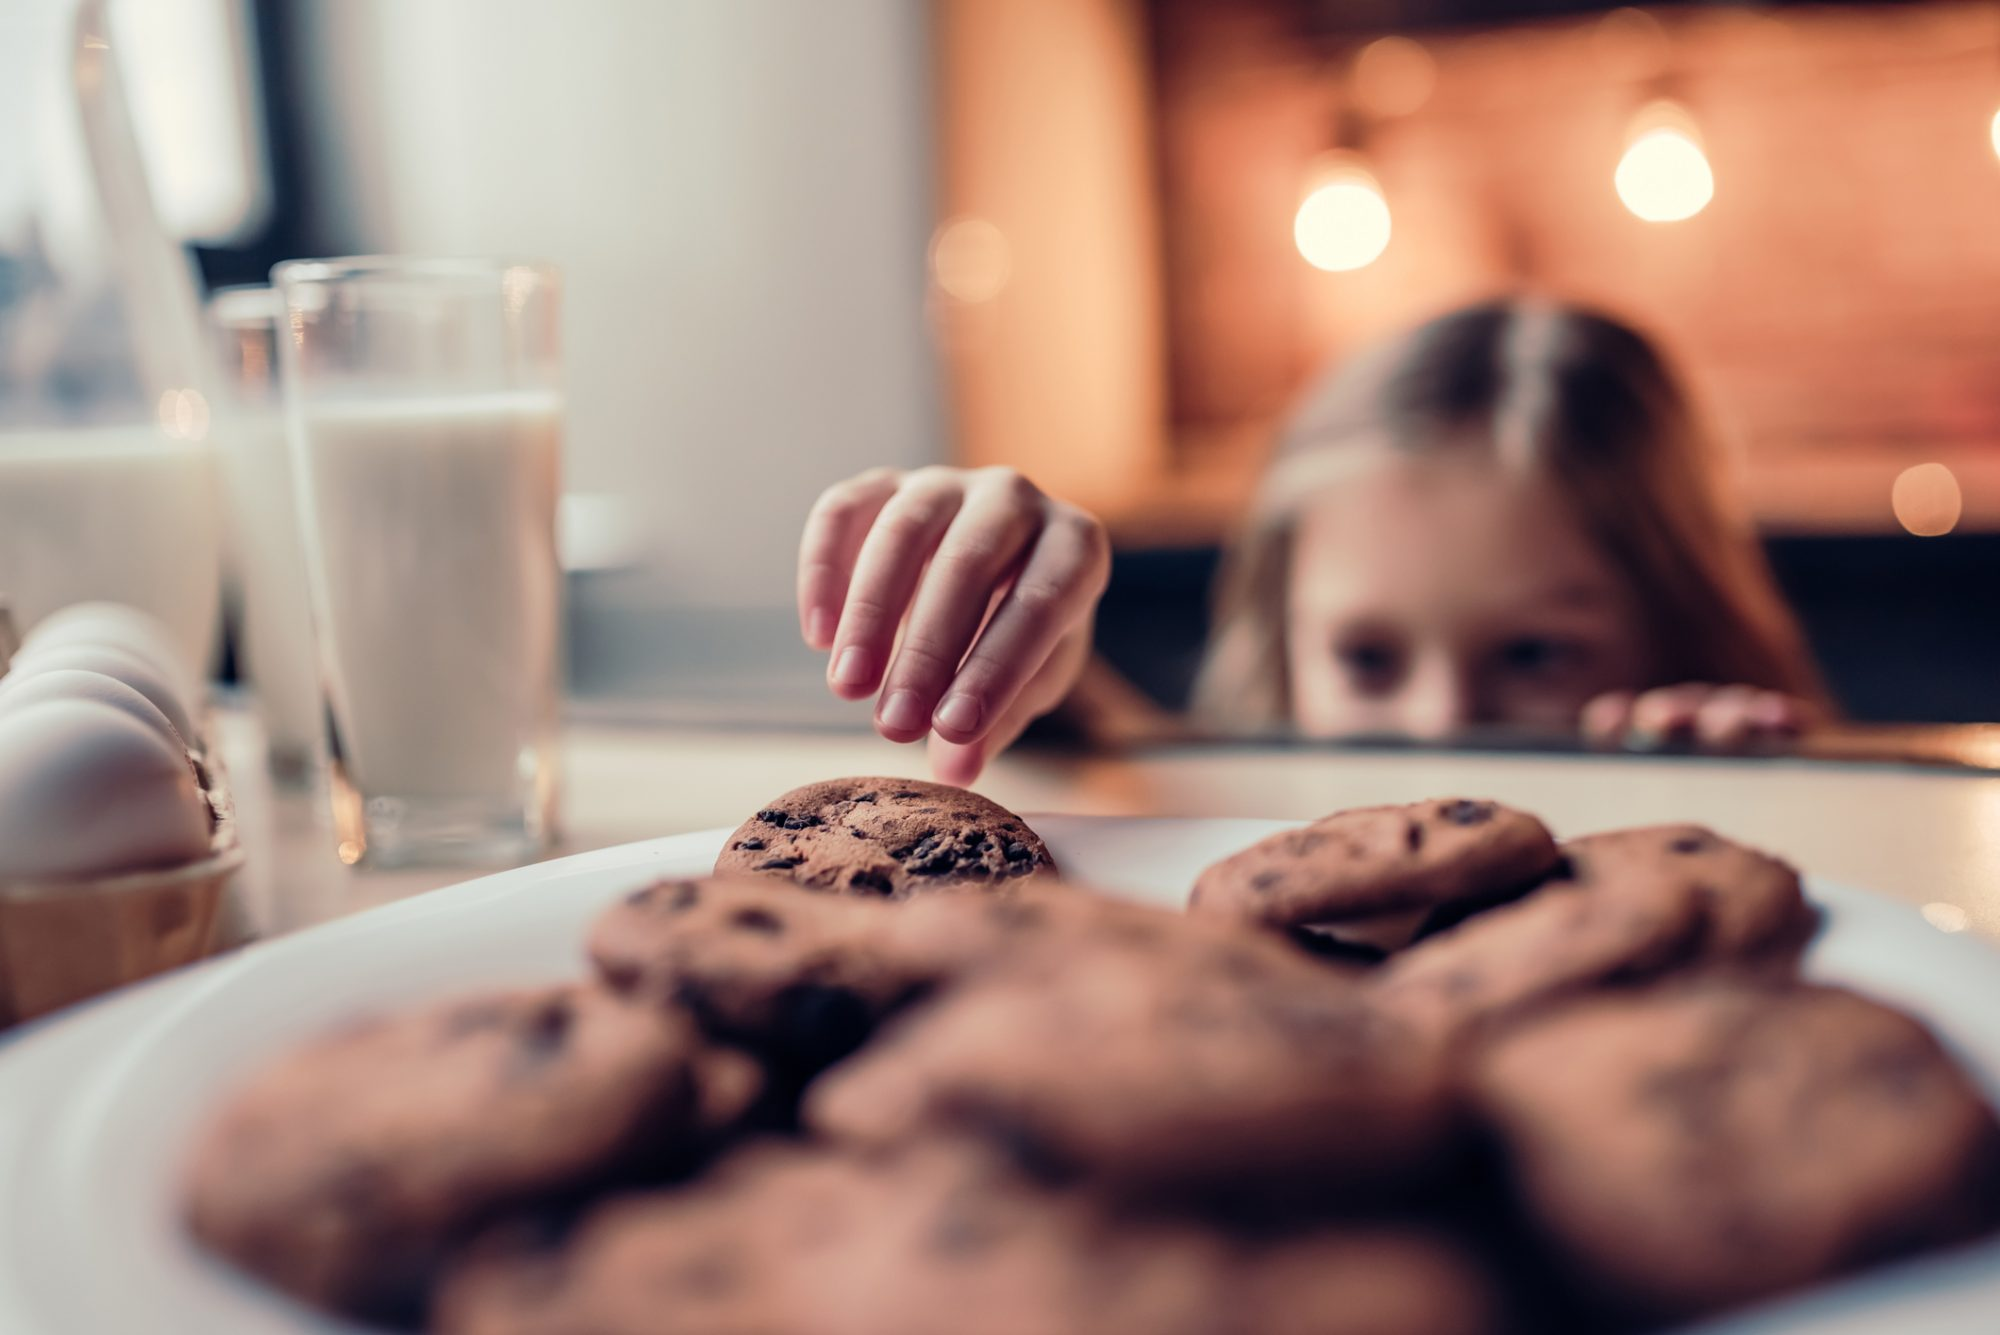 girl grabbing cookie from plate with glass of milk